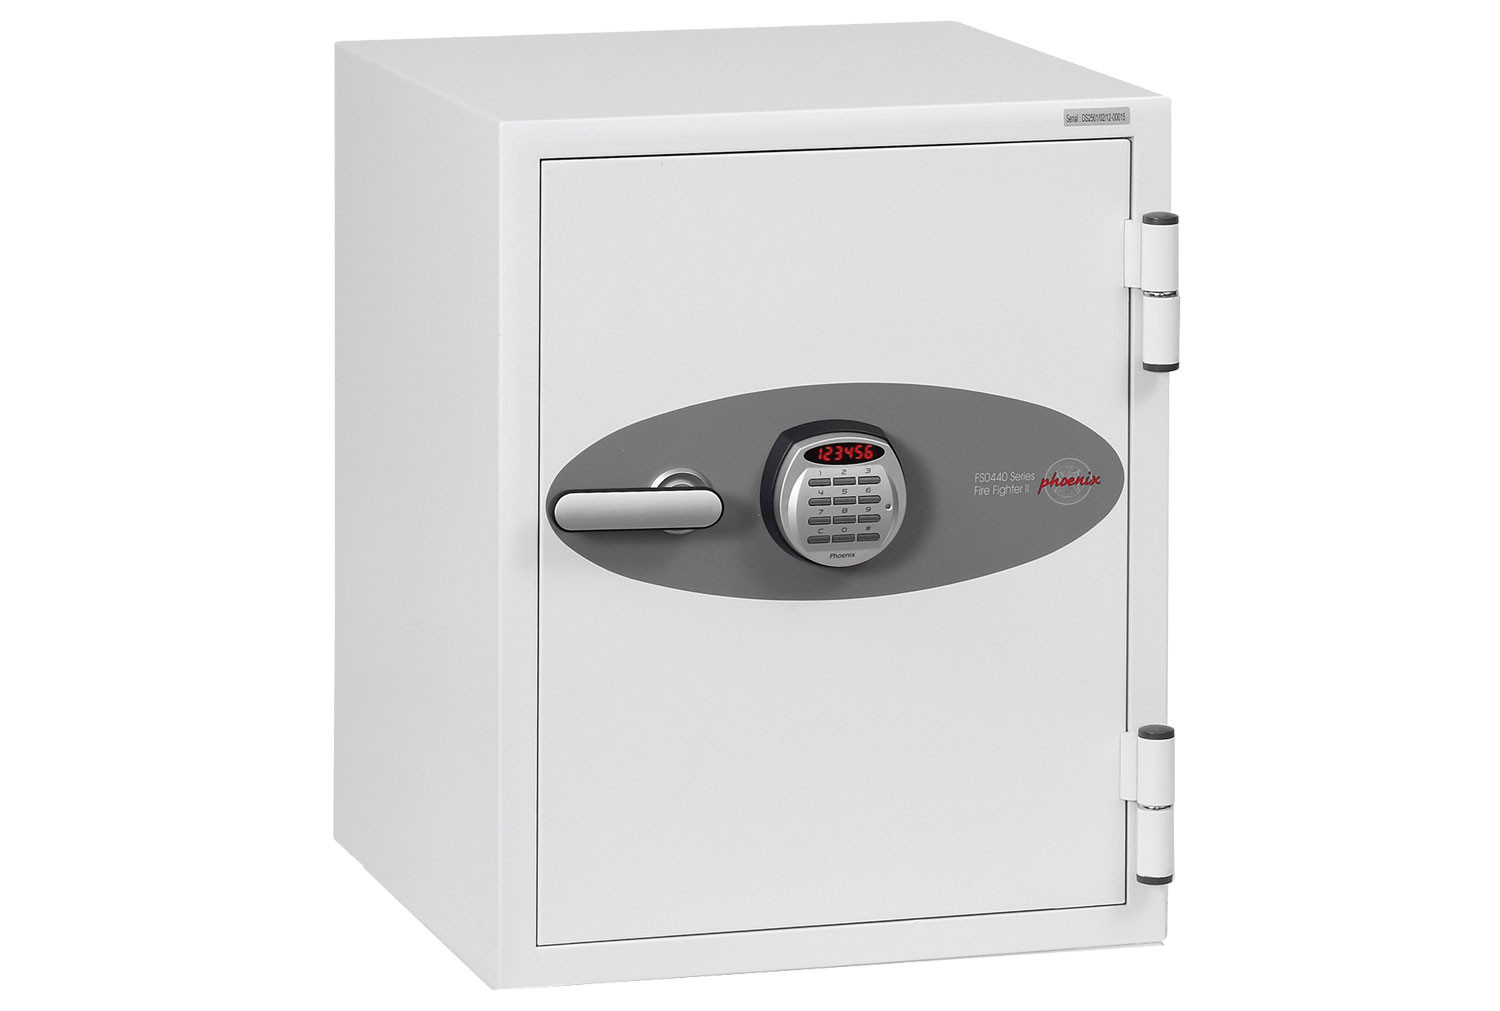 Phoenix Fire Fighter FS0441E Fire Safe With Electronic Lock (63ltrs)